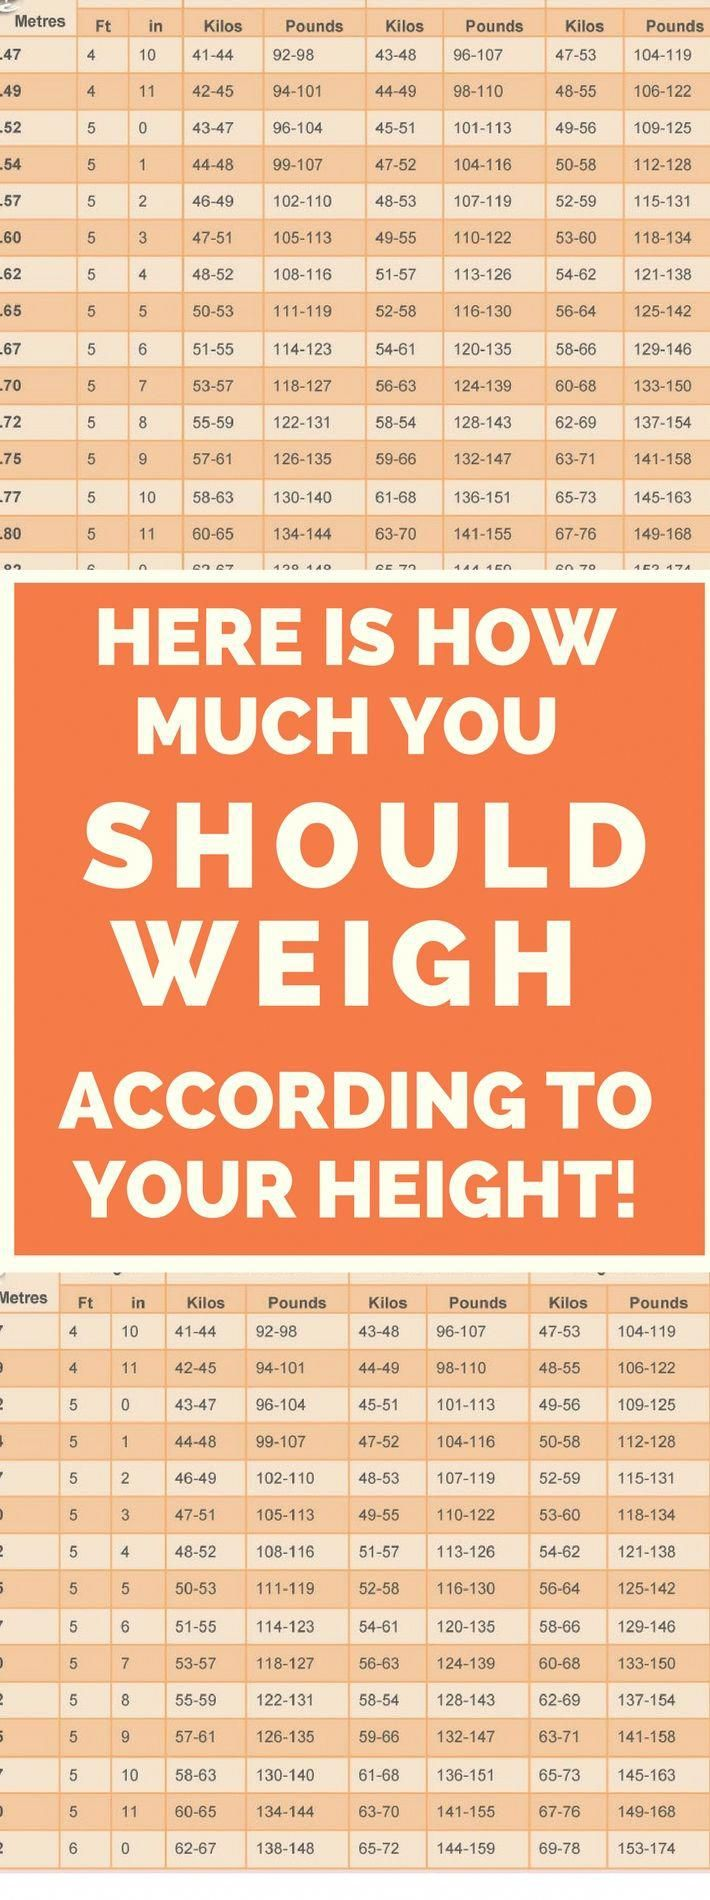 Here Is How Much You Should Weight According To Your Height